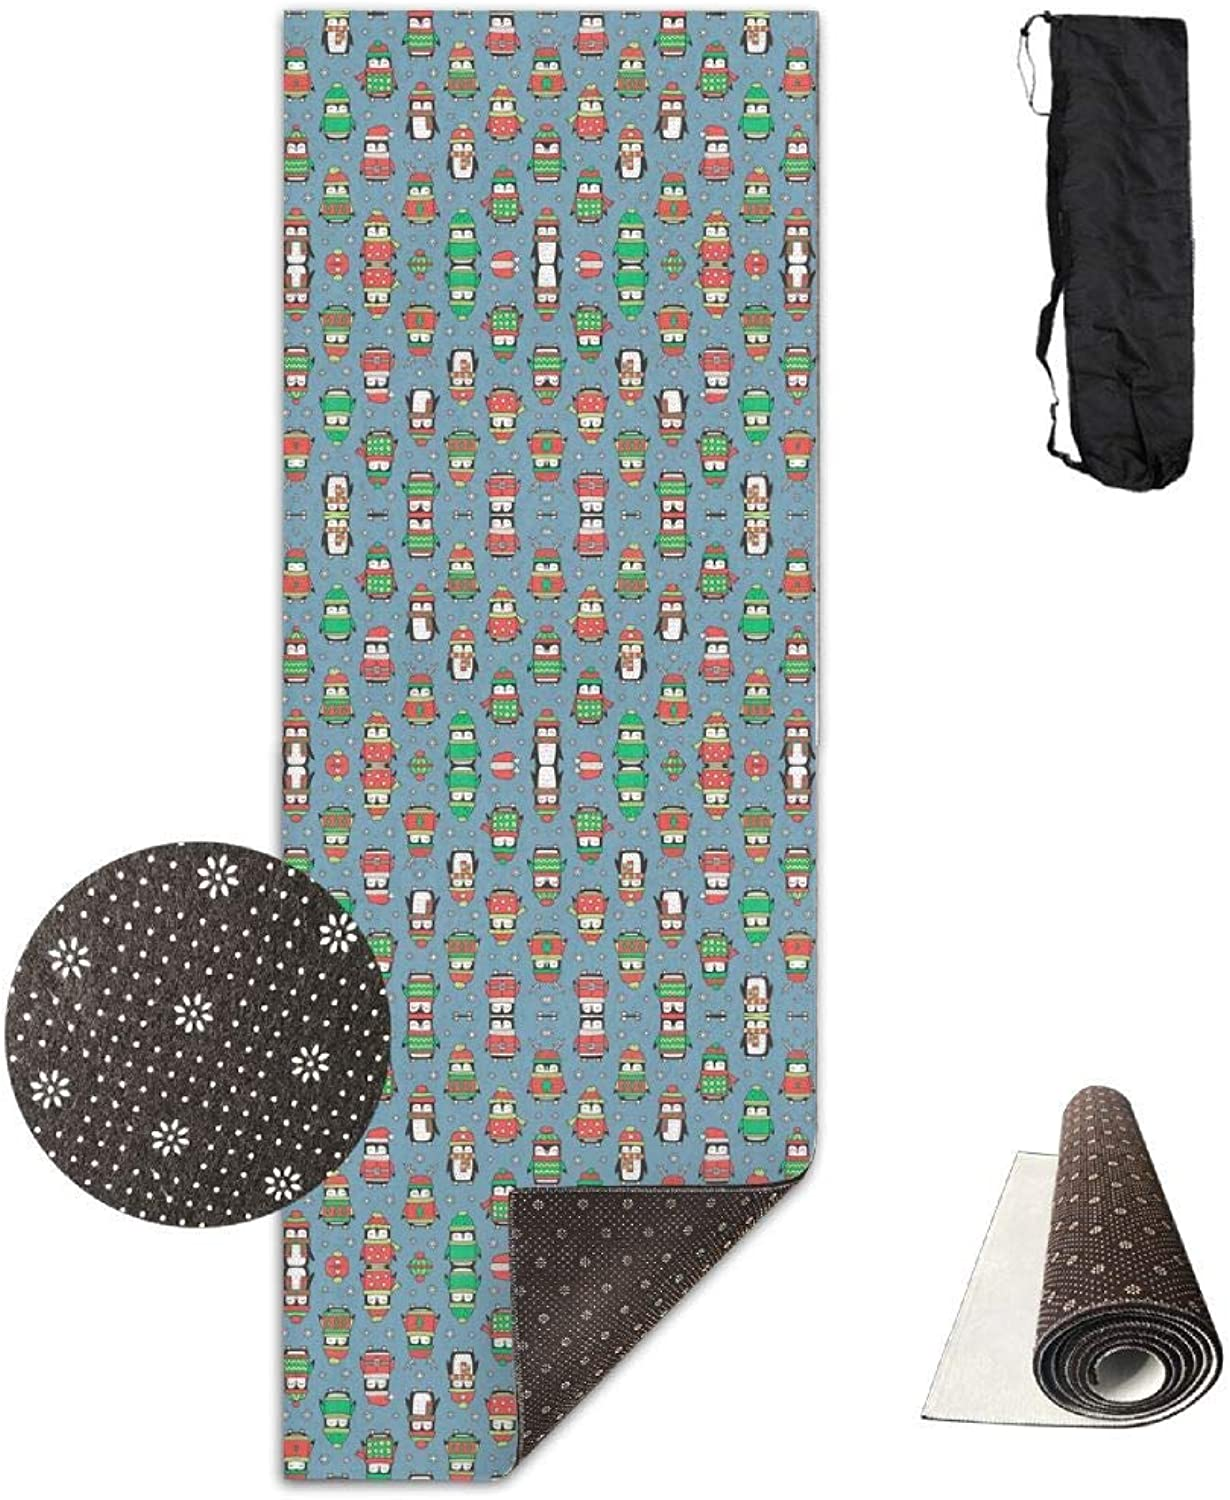 70Inch Long 28Inch Wide Comfort Velvet Yoga Mat, Christmas Holiday Winter Penguins in Ugly Sweaters(3726) Mat Carrying Strap & Bag